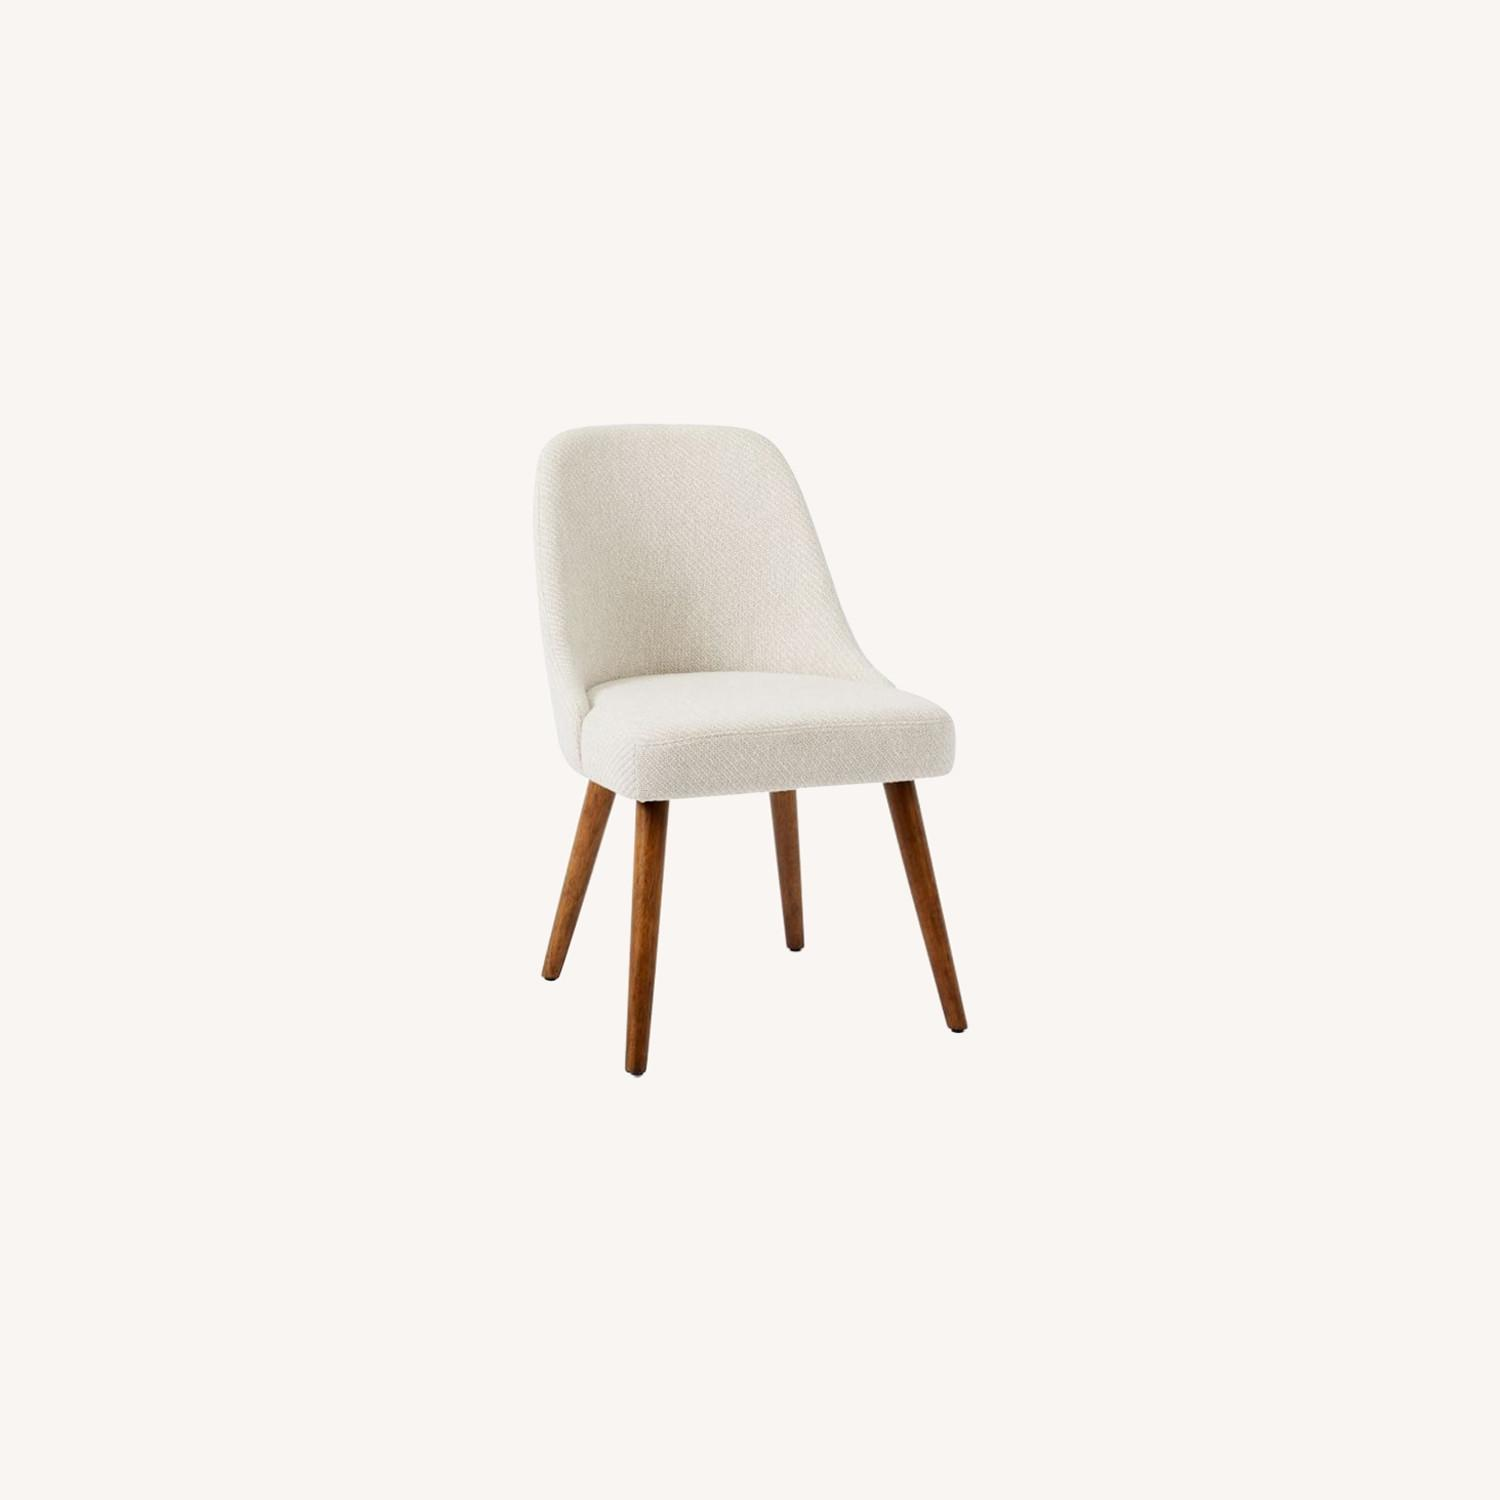 West Elm Mid Century Upholstered Dining Chair - image-0